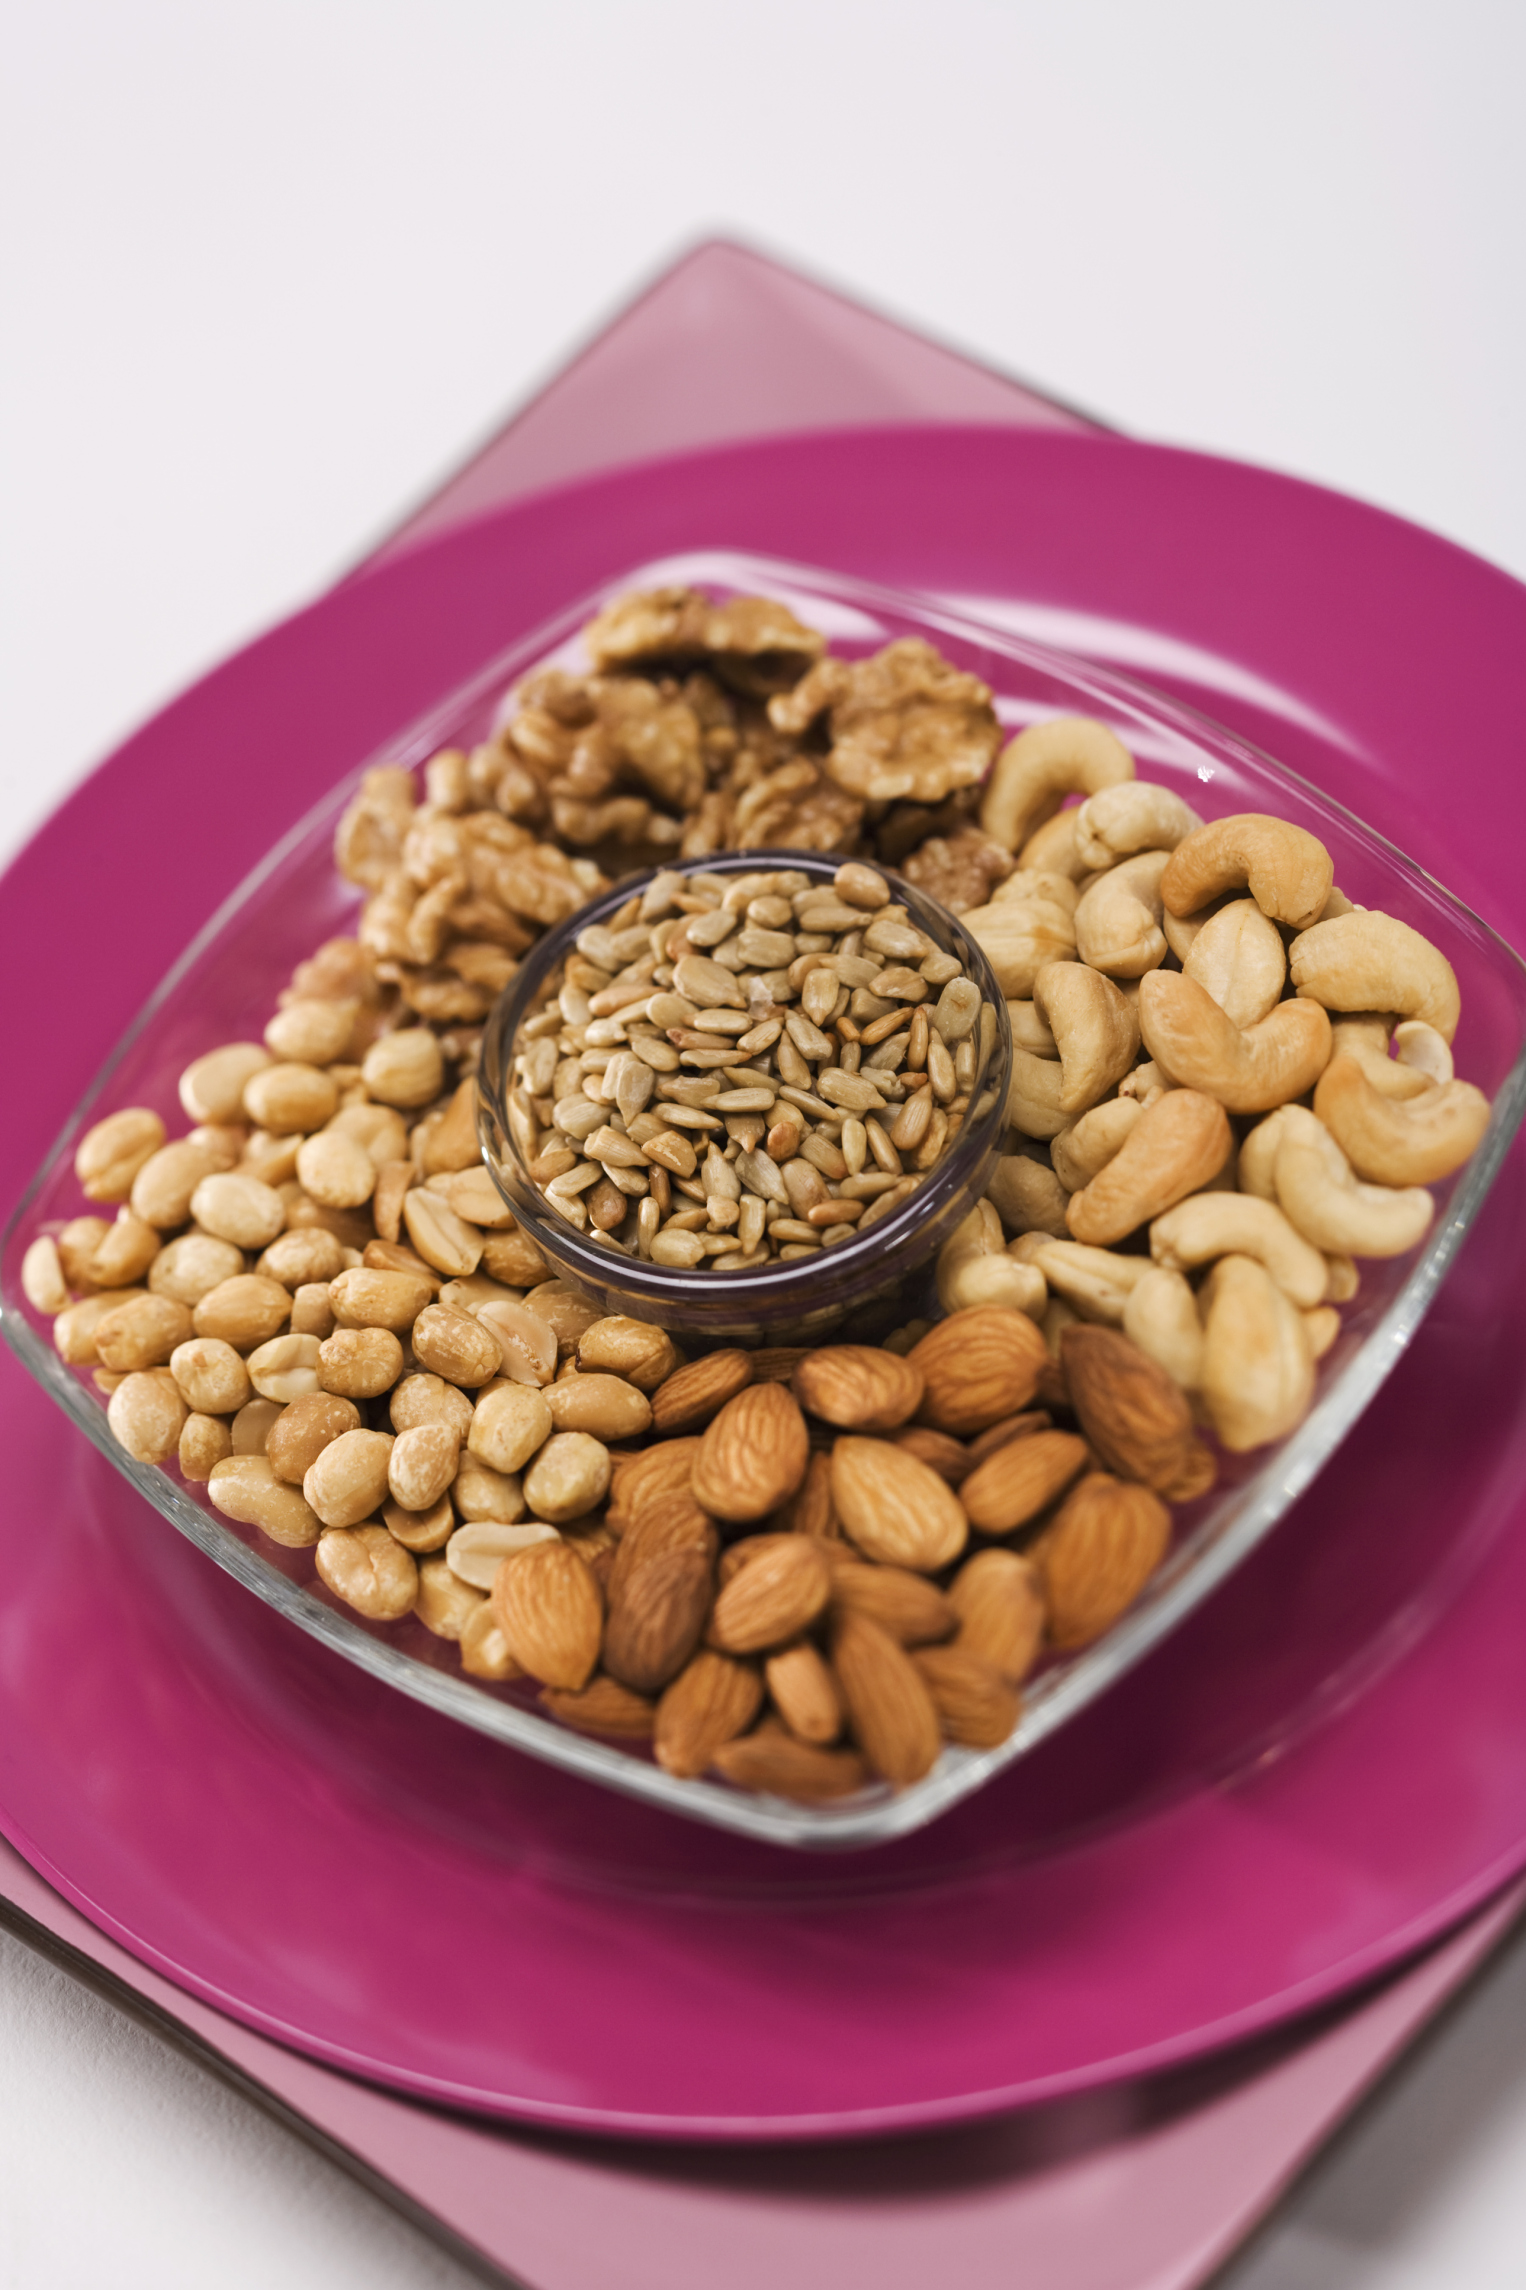 Nuts and seeds are good plant-based sources of protein.